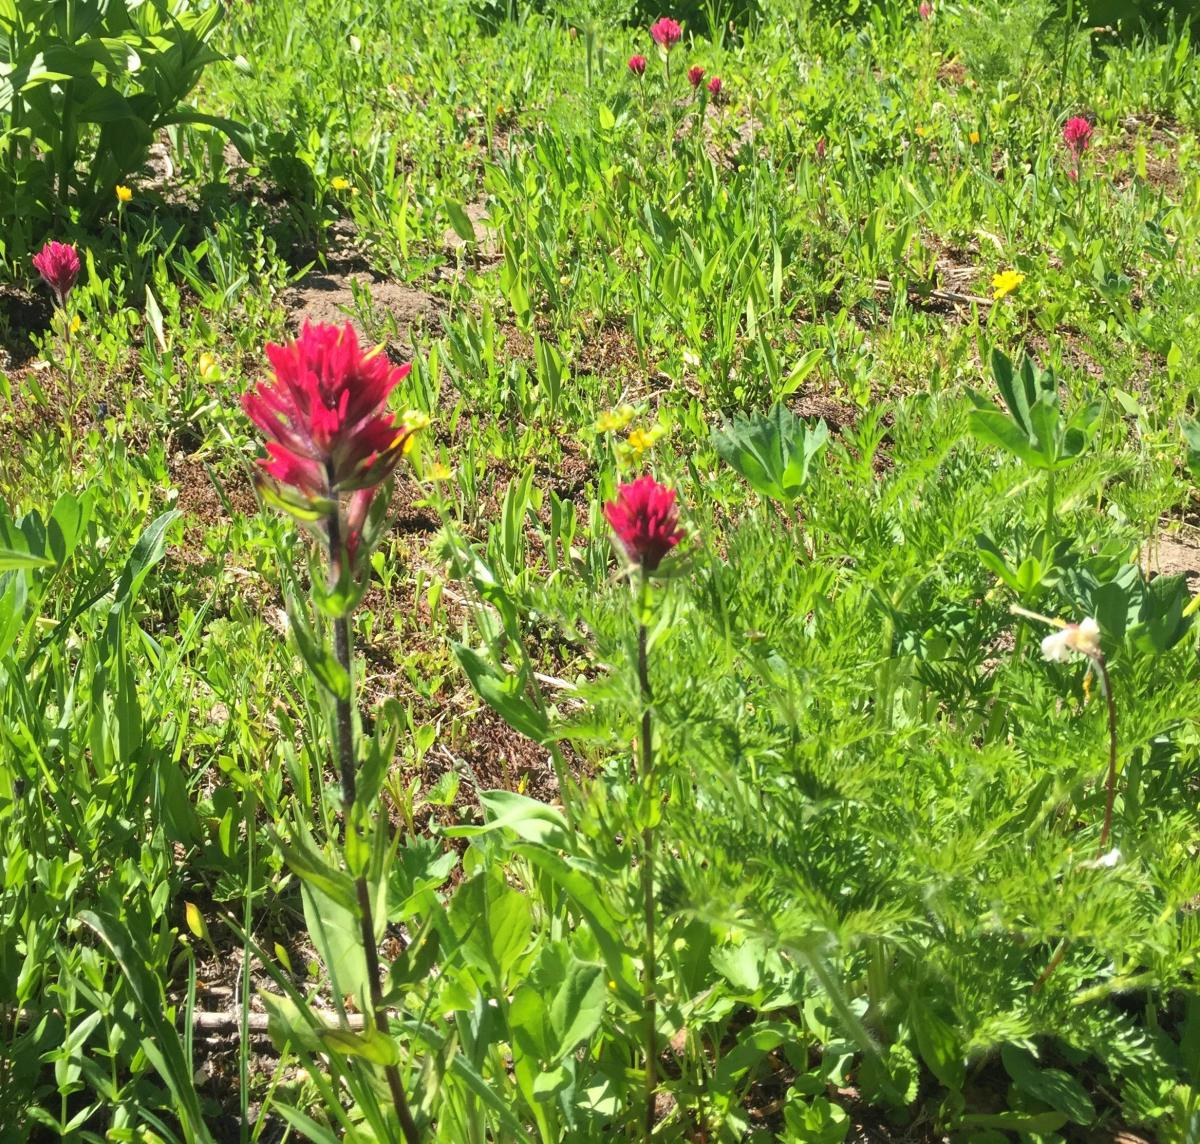 photo of red flowers